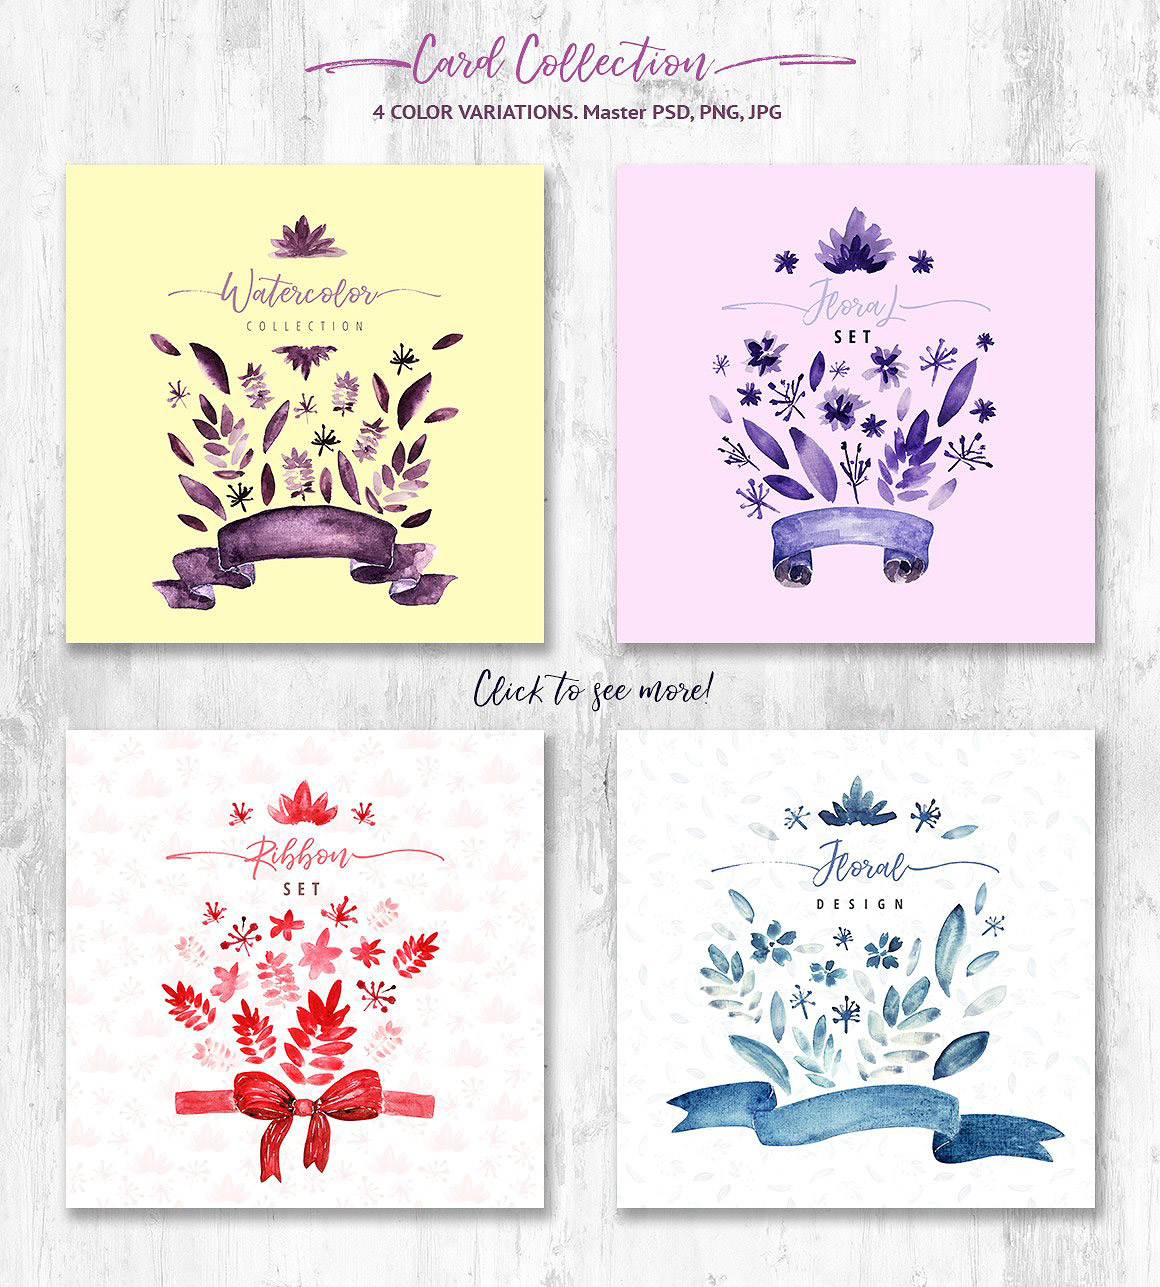 Watercolor-Ribbon-Collection5